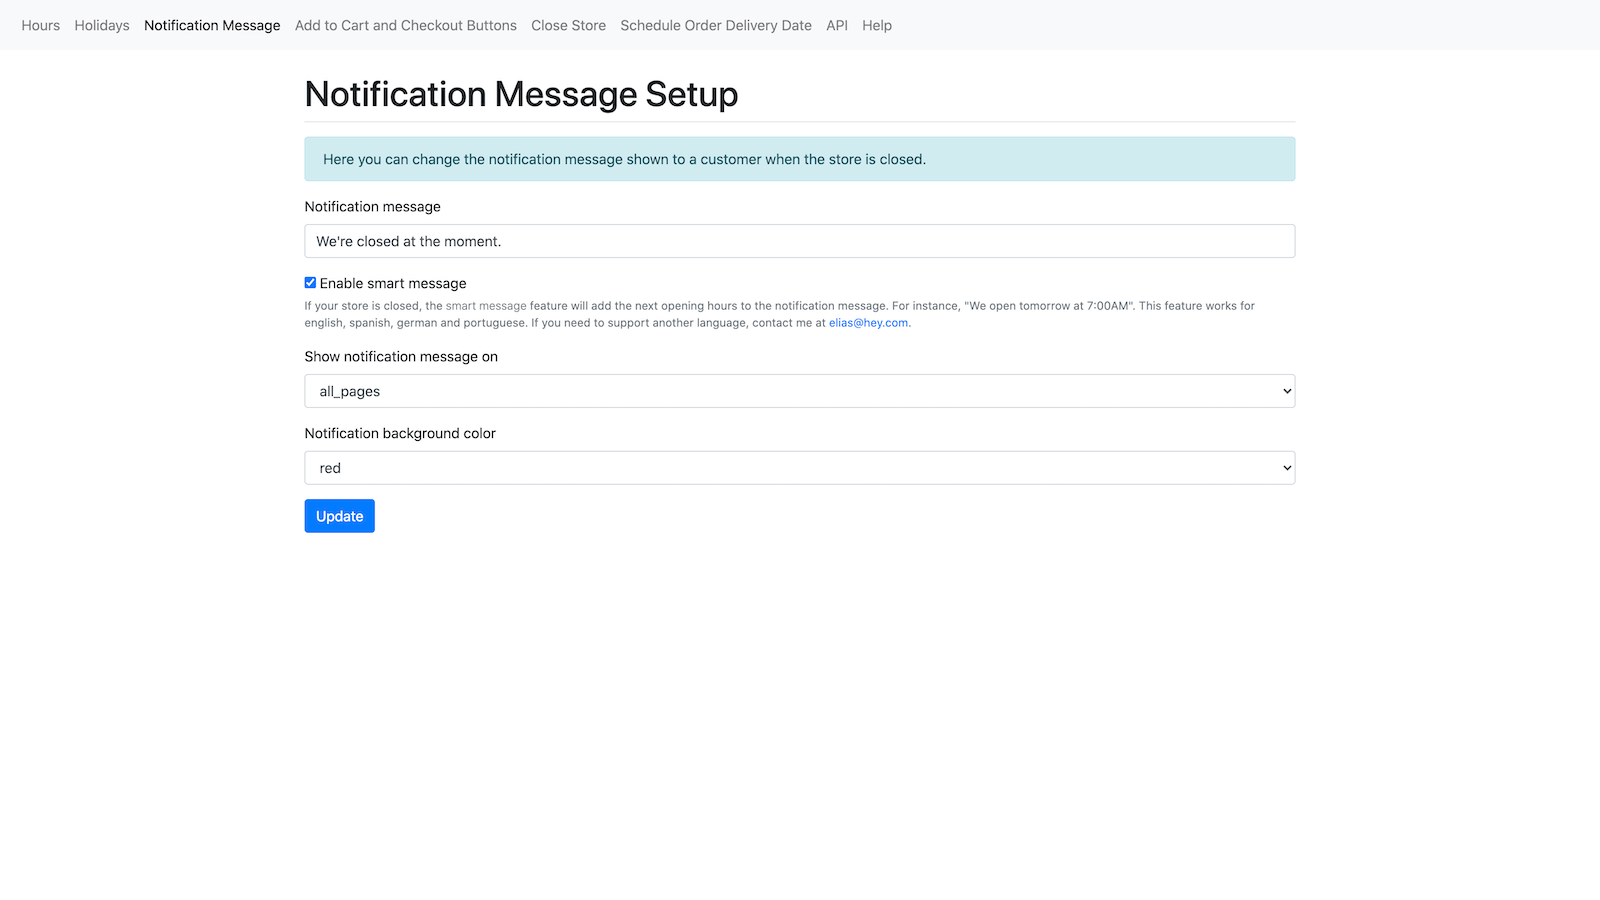 Customize the notification message